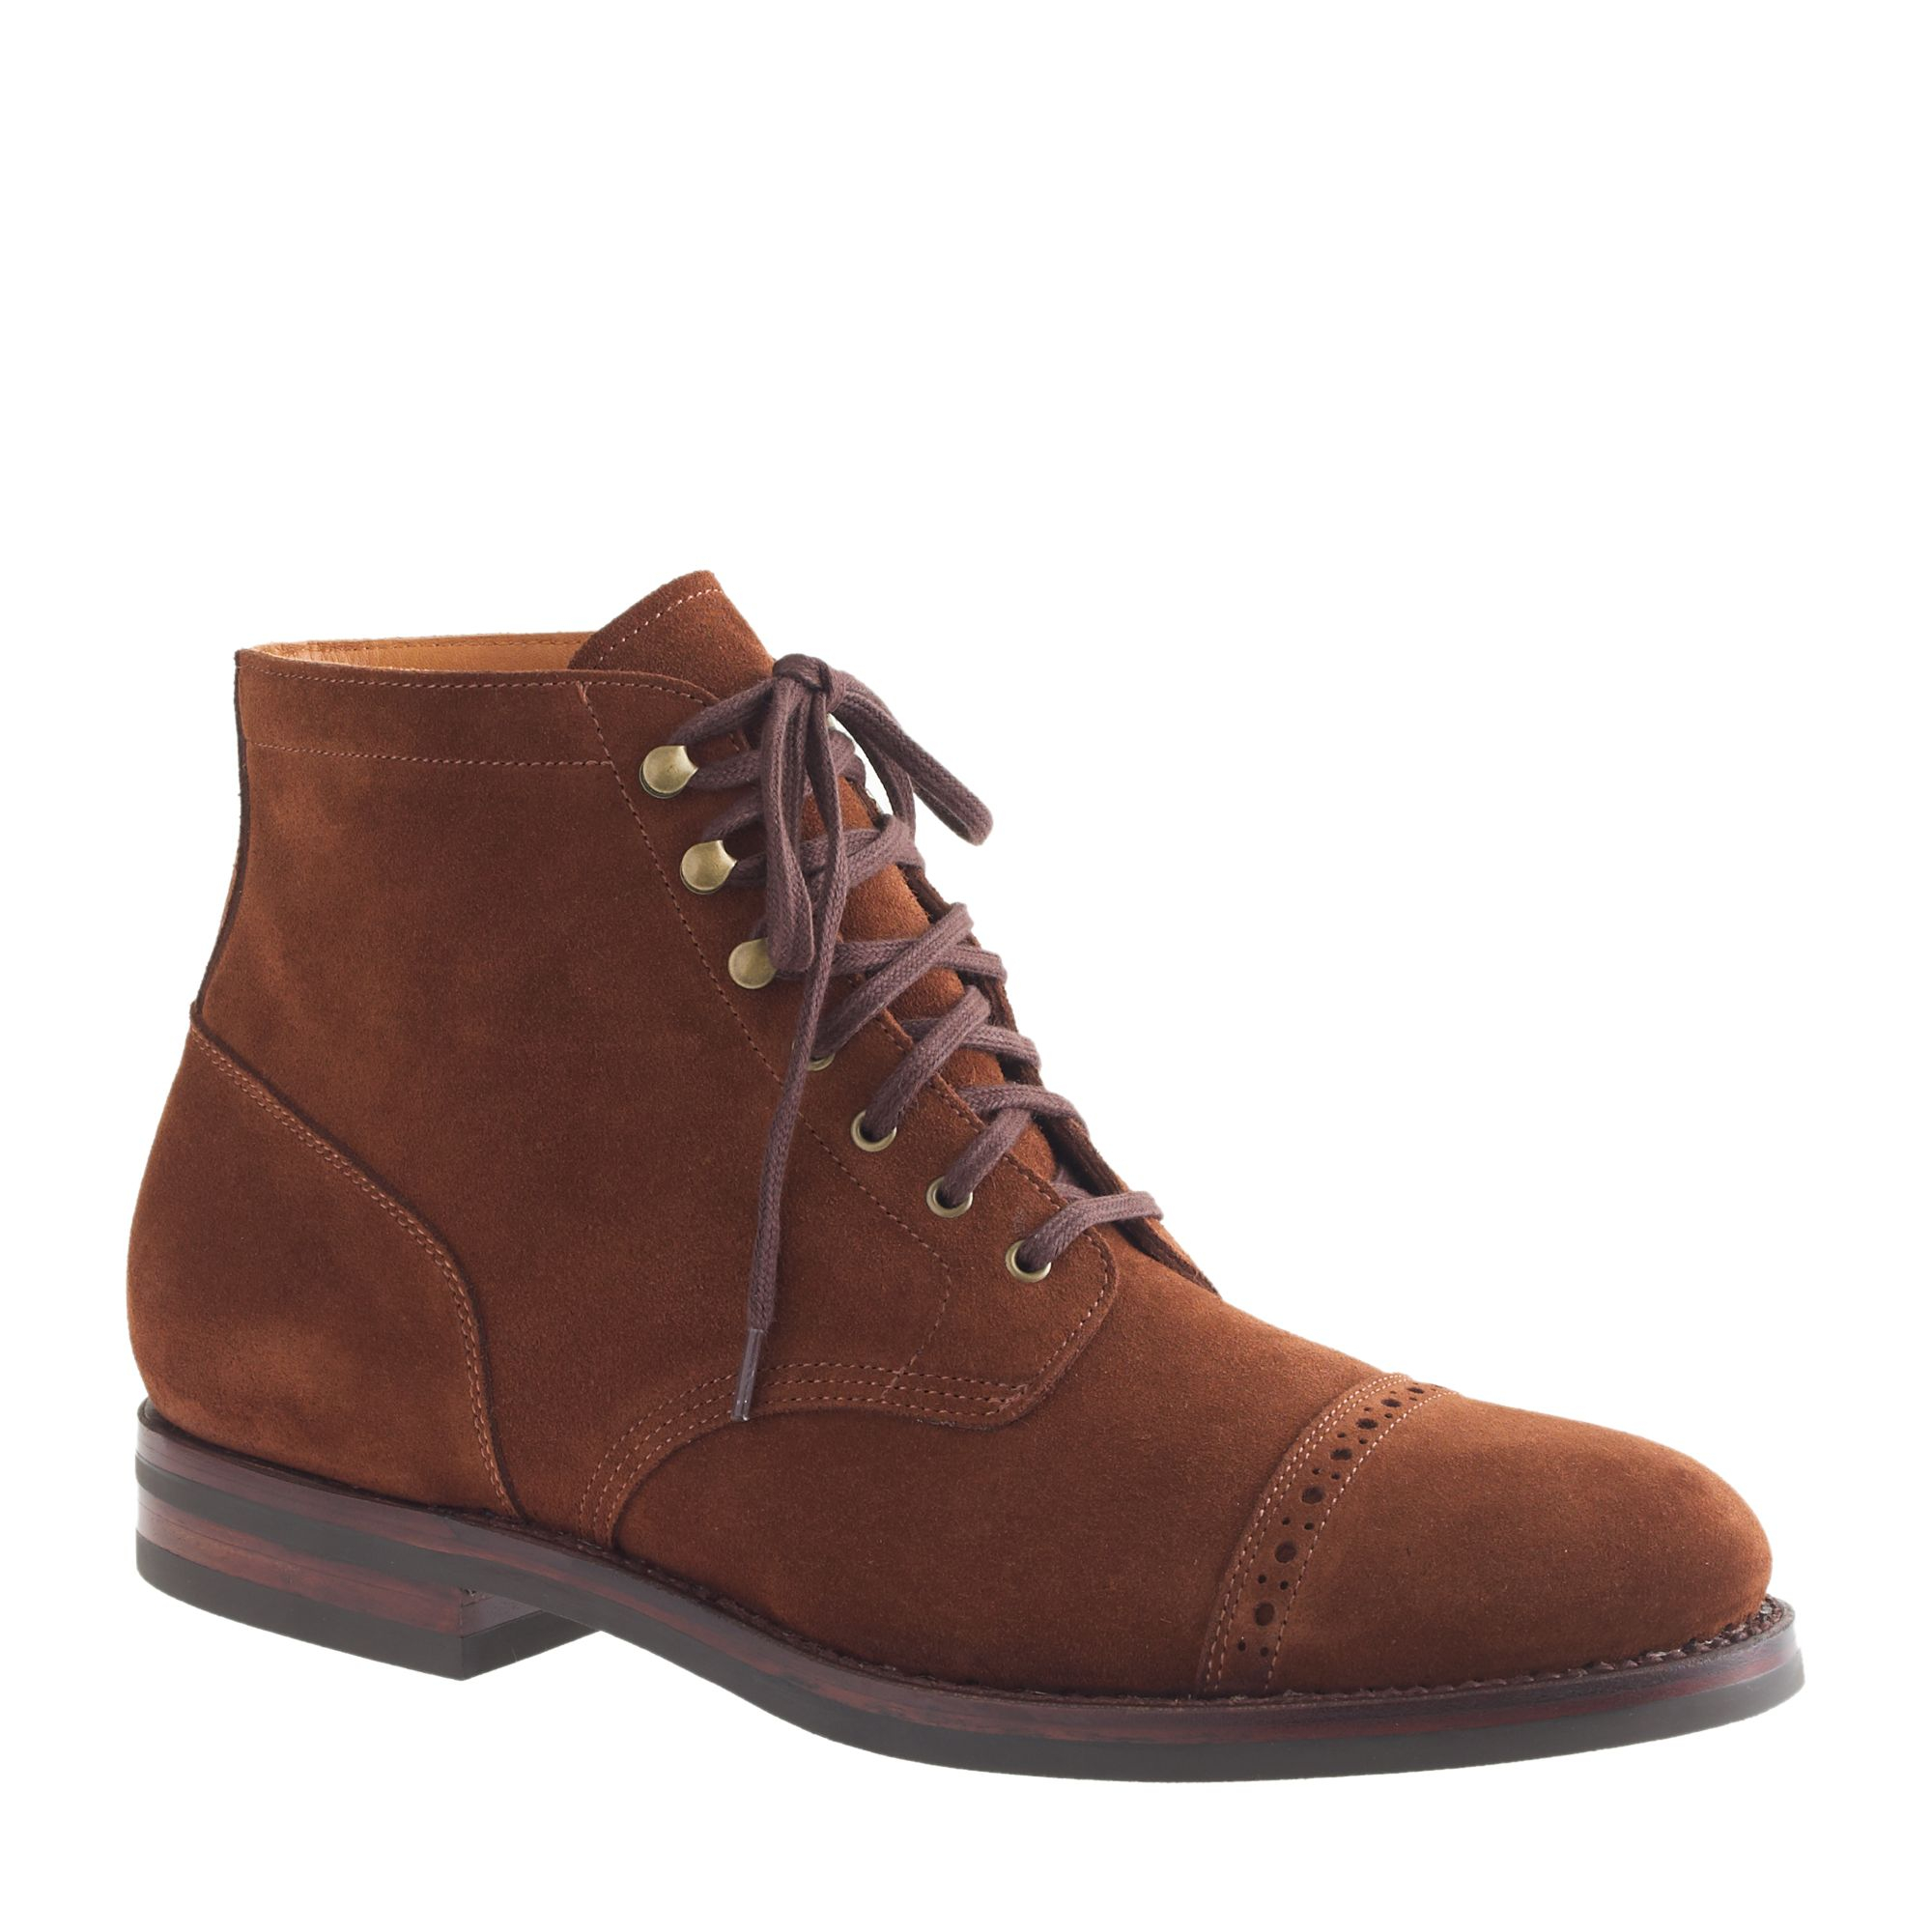 j crew ludlow suede cap toe boots in brown for rich